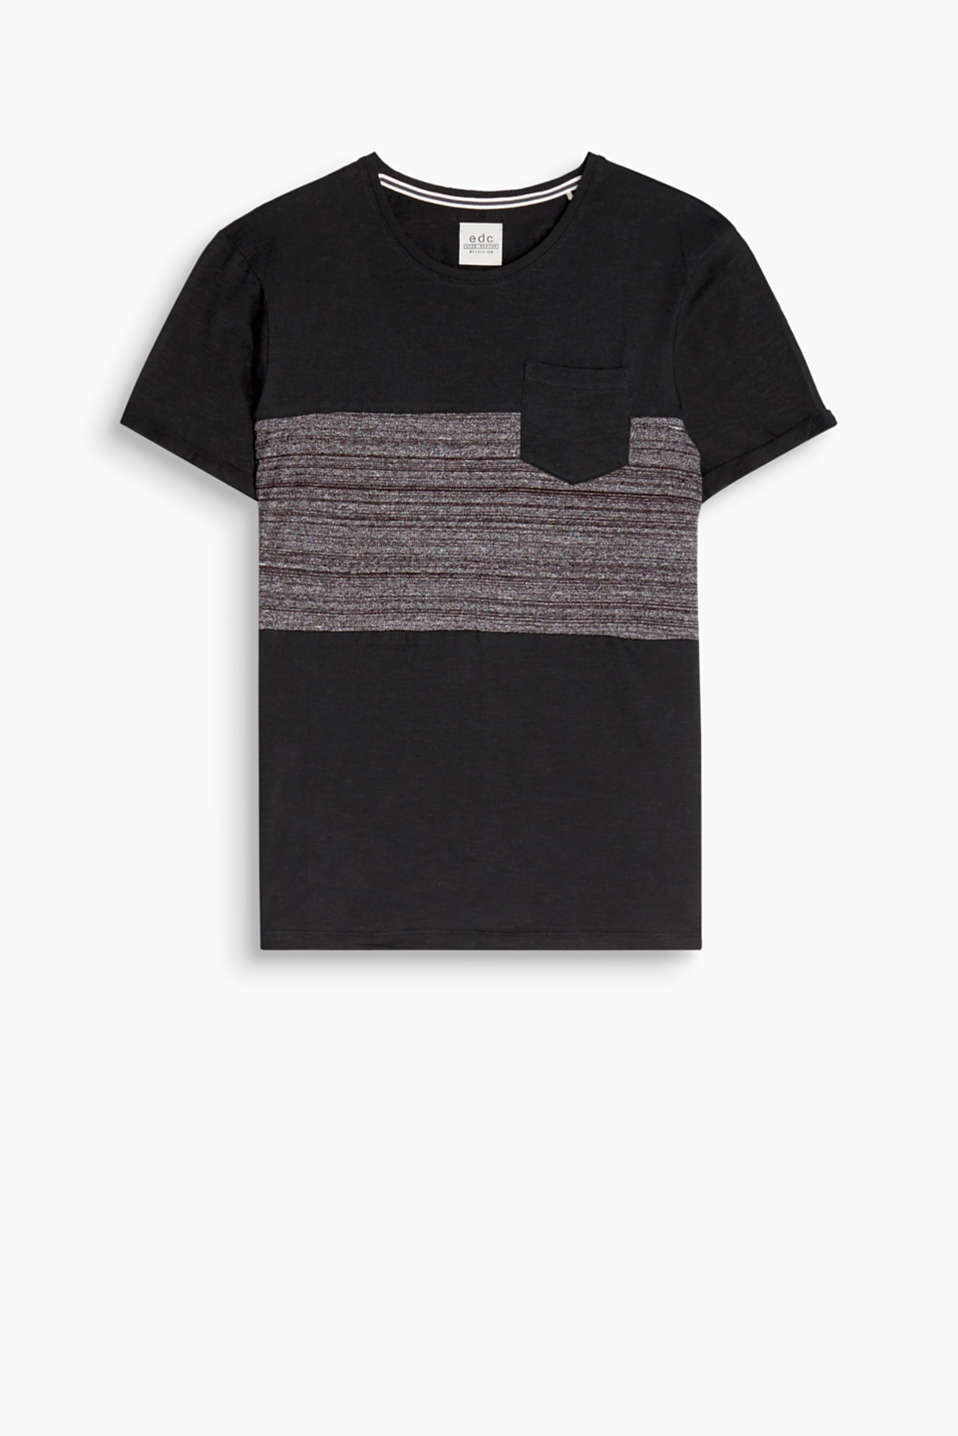 Texture mix! Block stripes in melange and slub jersey make this T-shirt a head-turning piece.